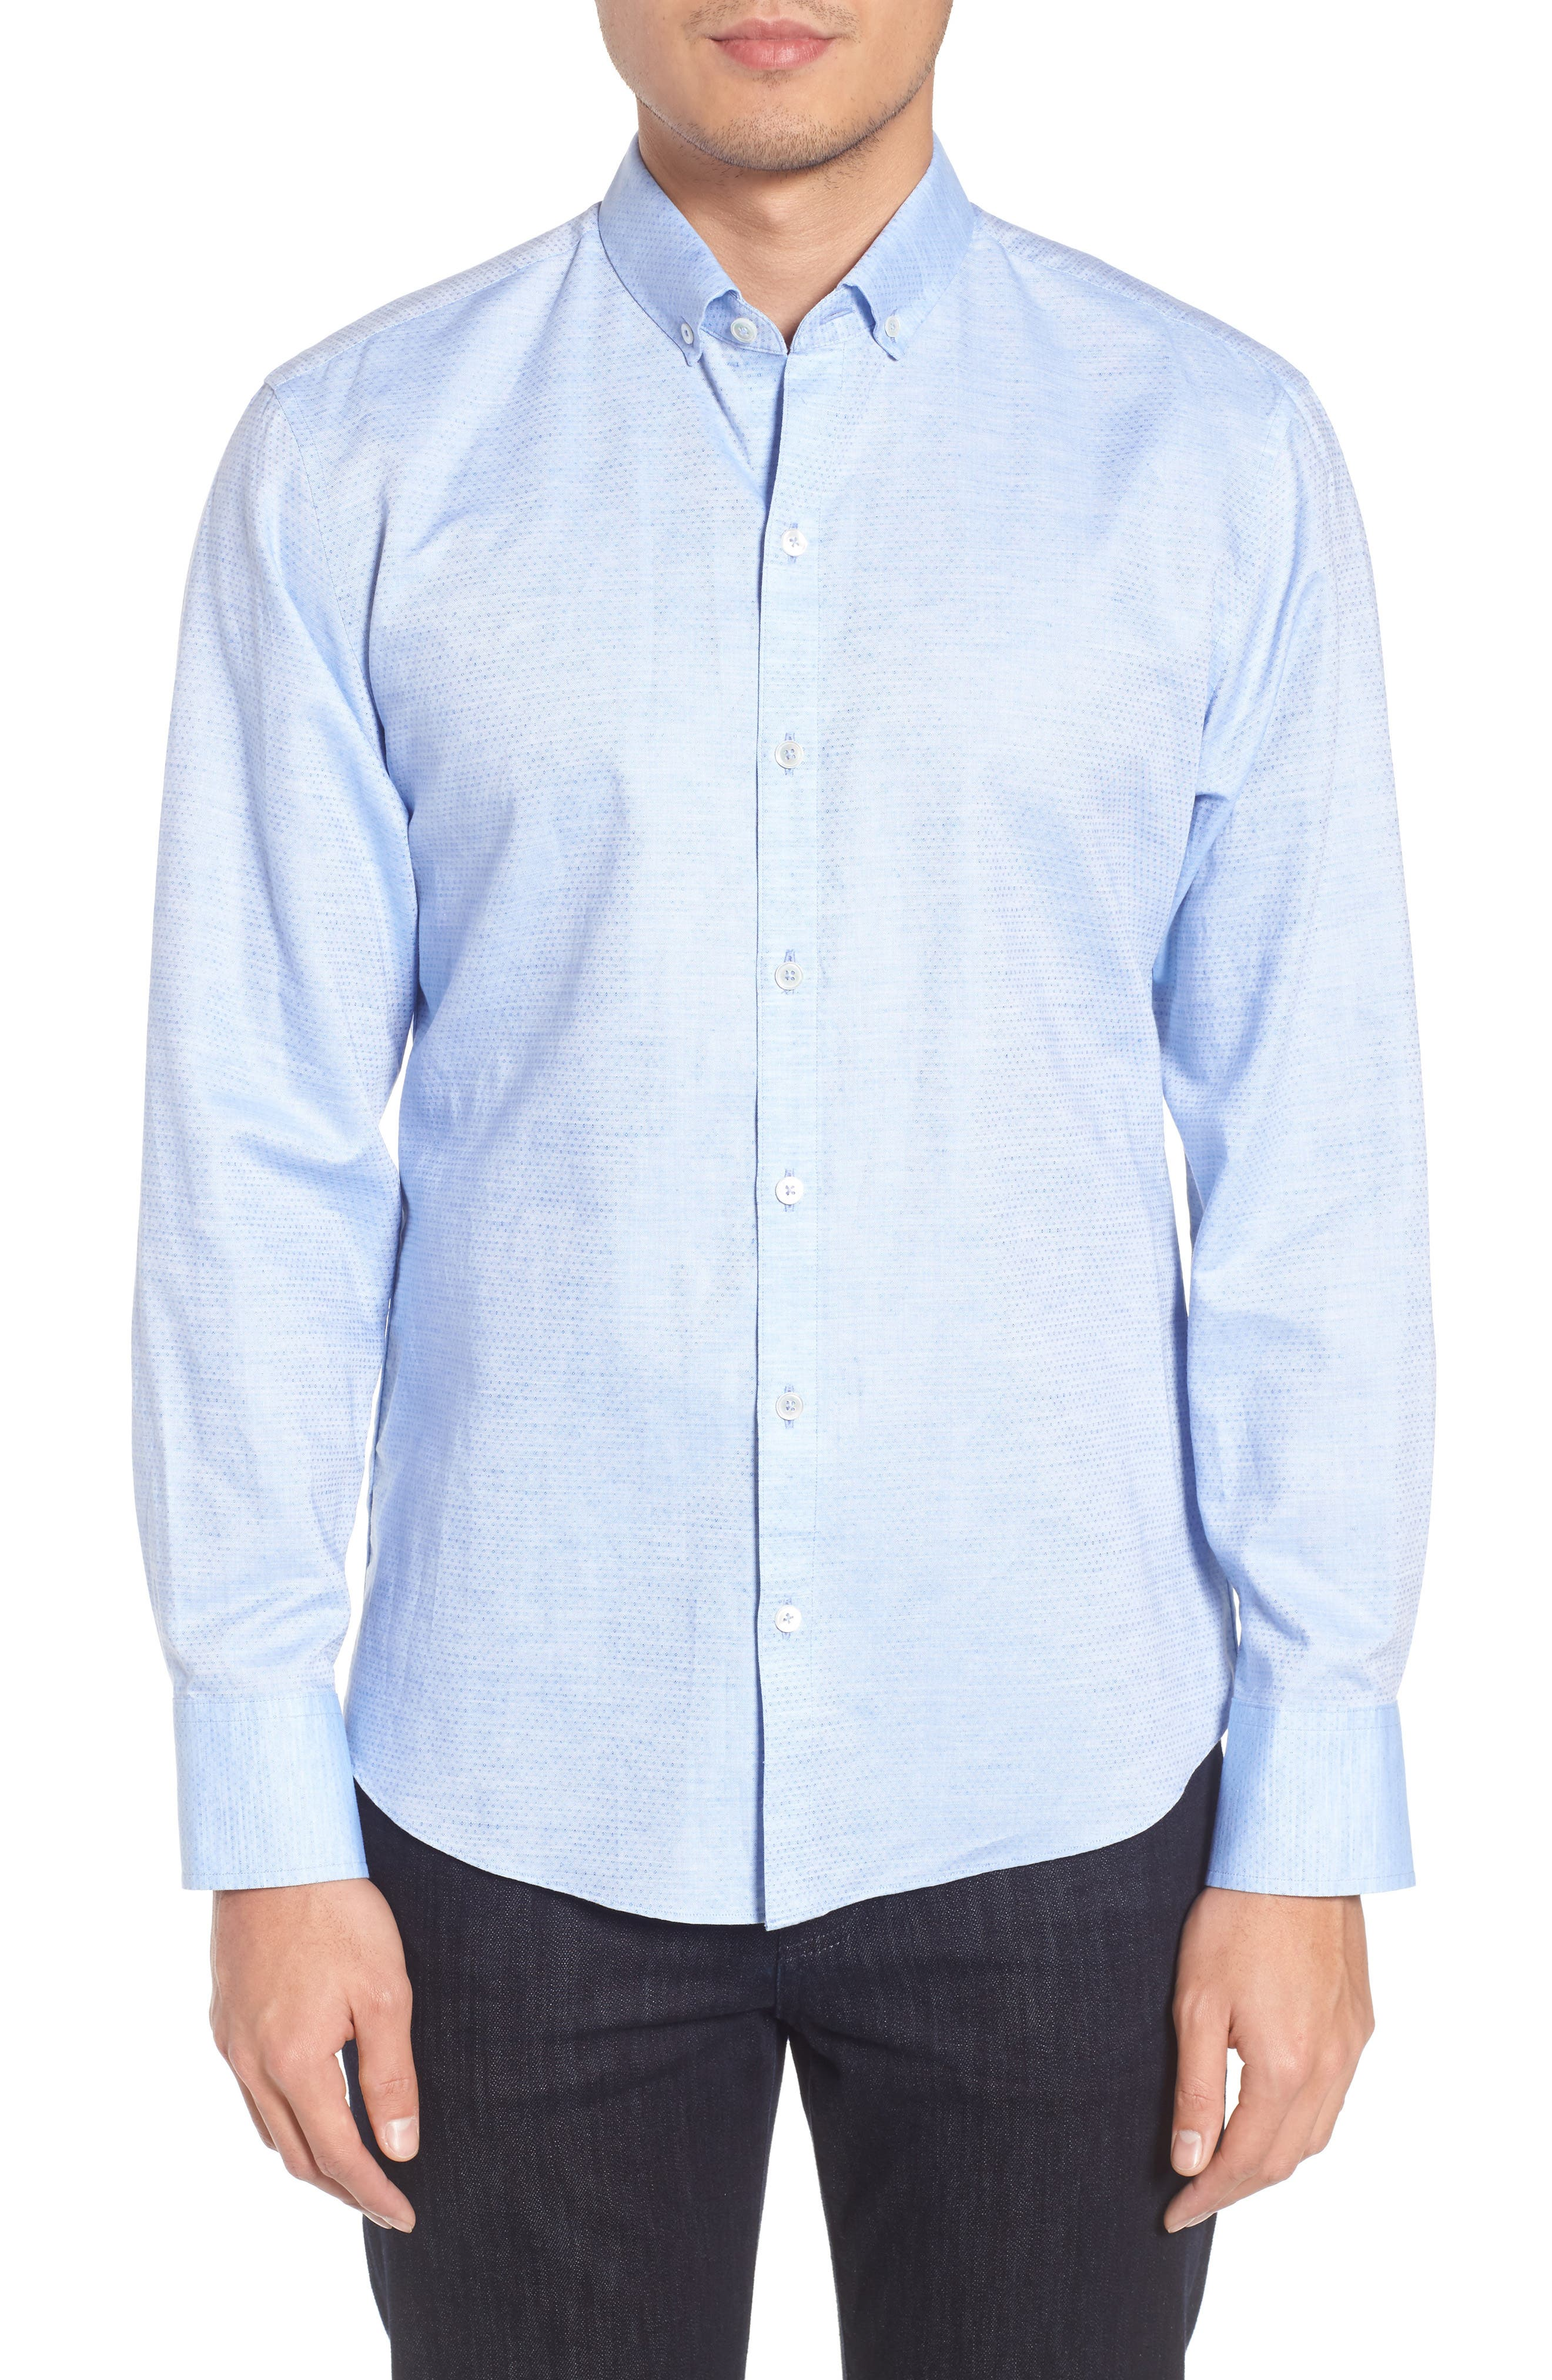 Gomis Regular Fit Dobby Sport Shirt,                         Main,                         color,